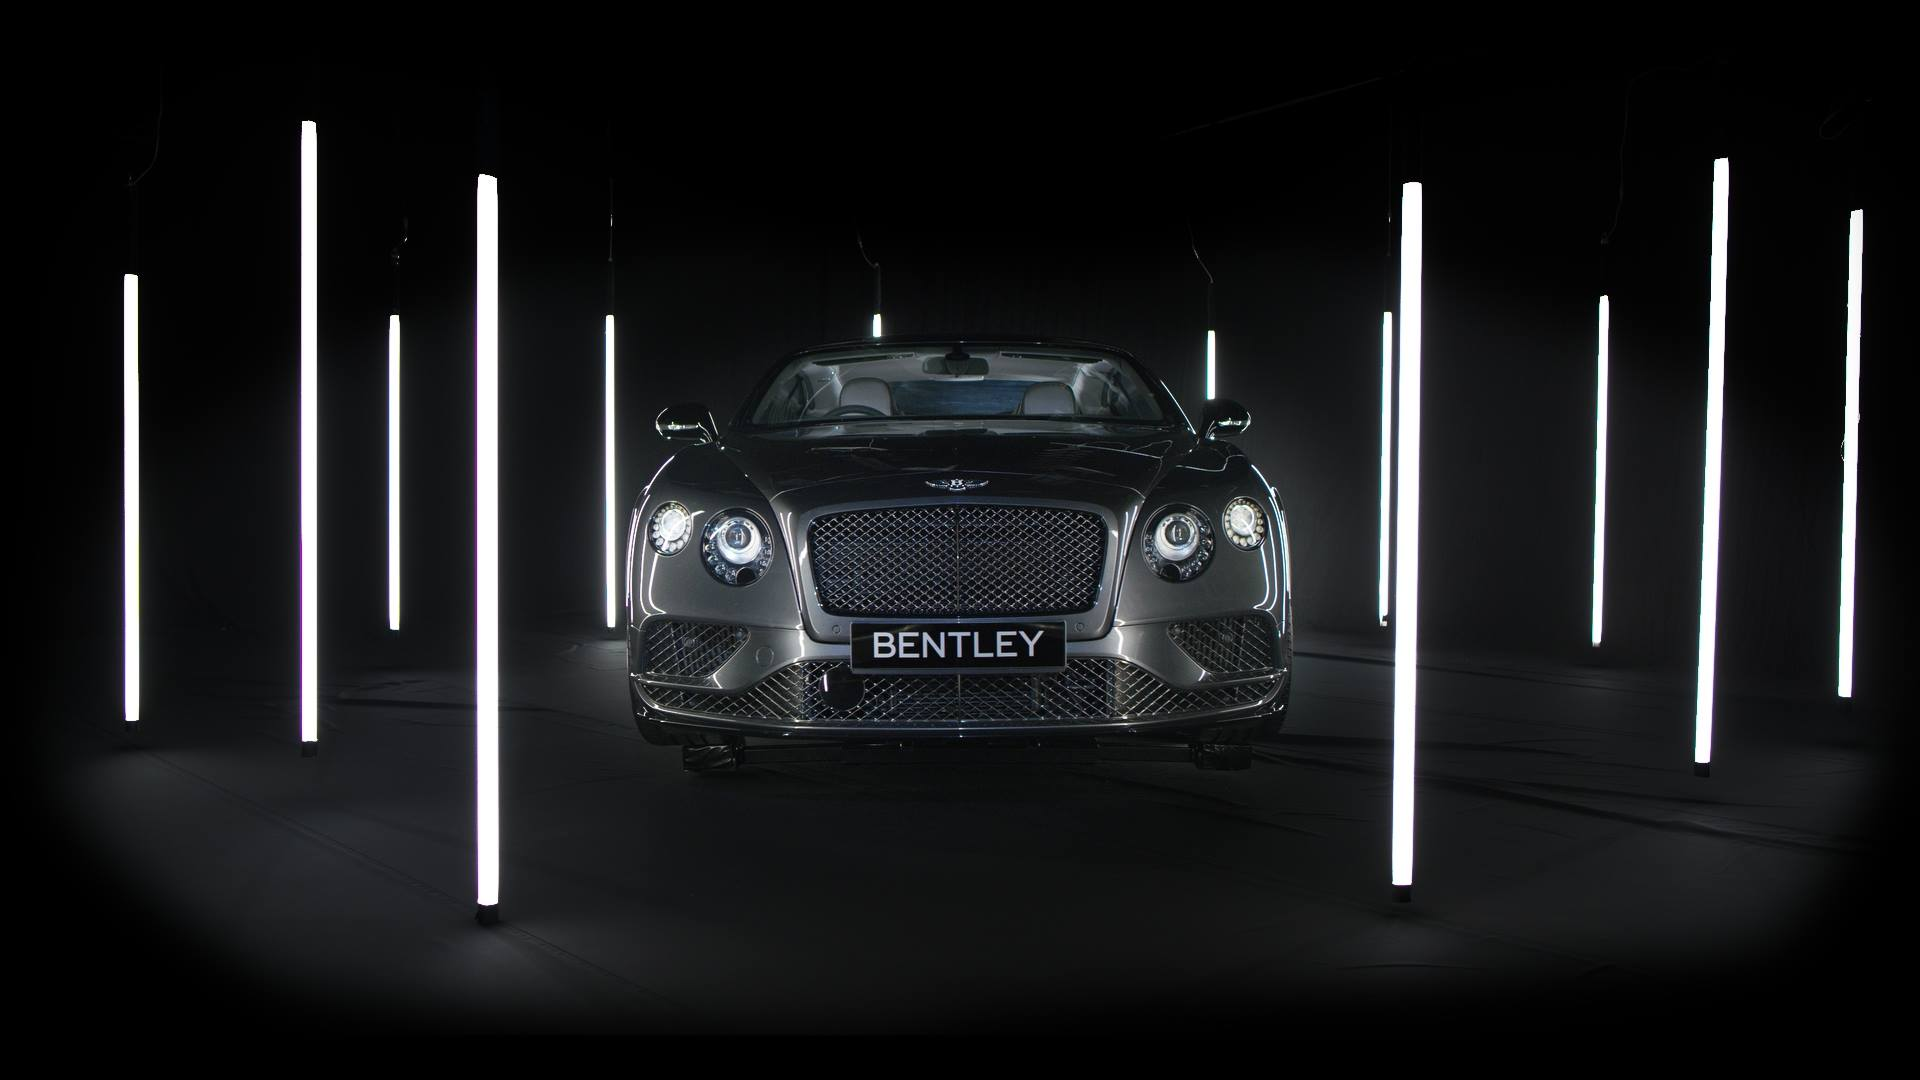 High concept Bentley spec commercial car advert using encapsulites